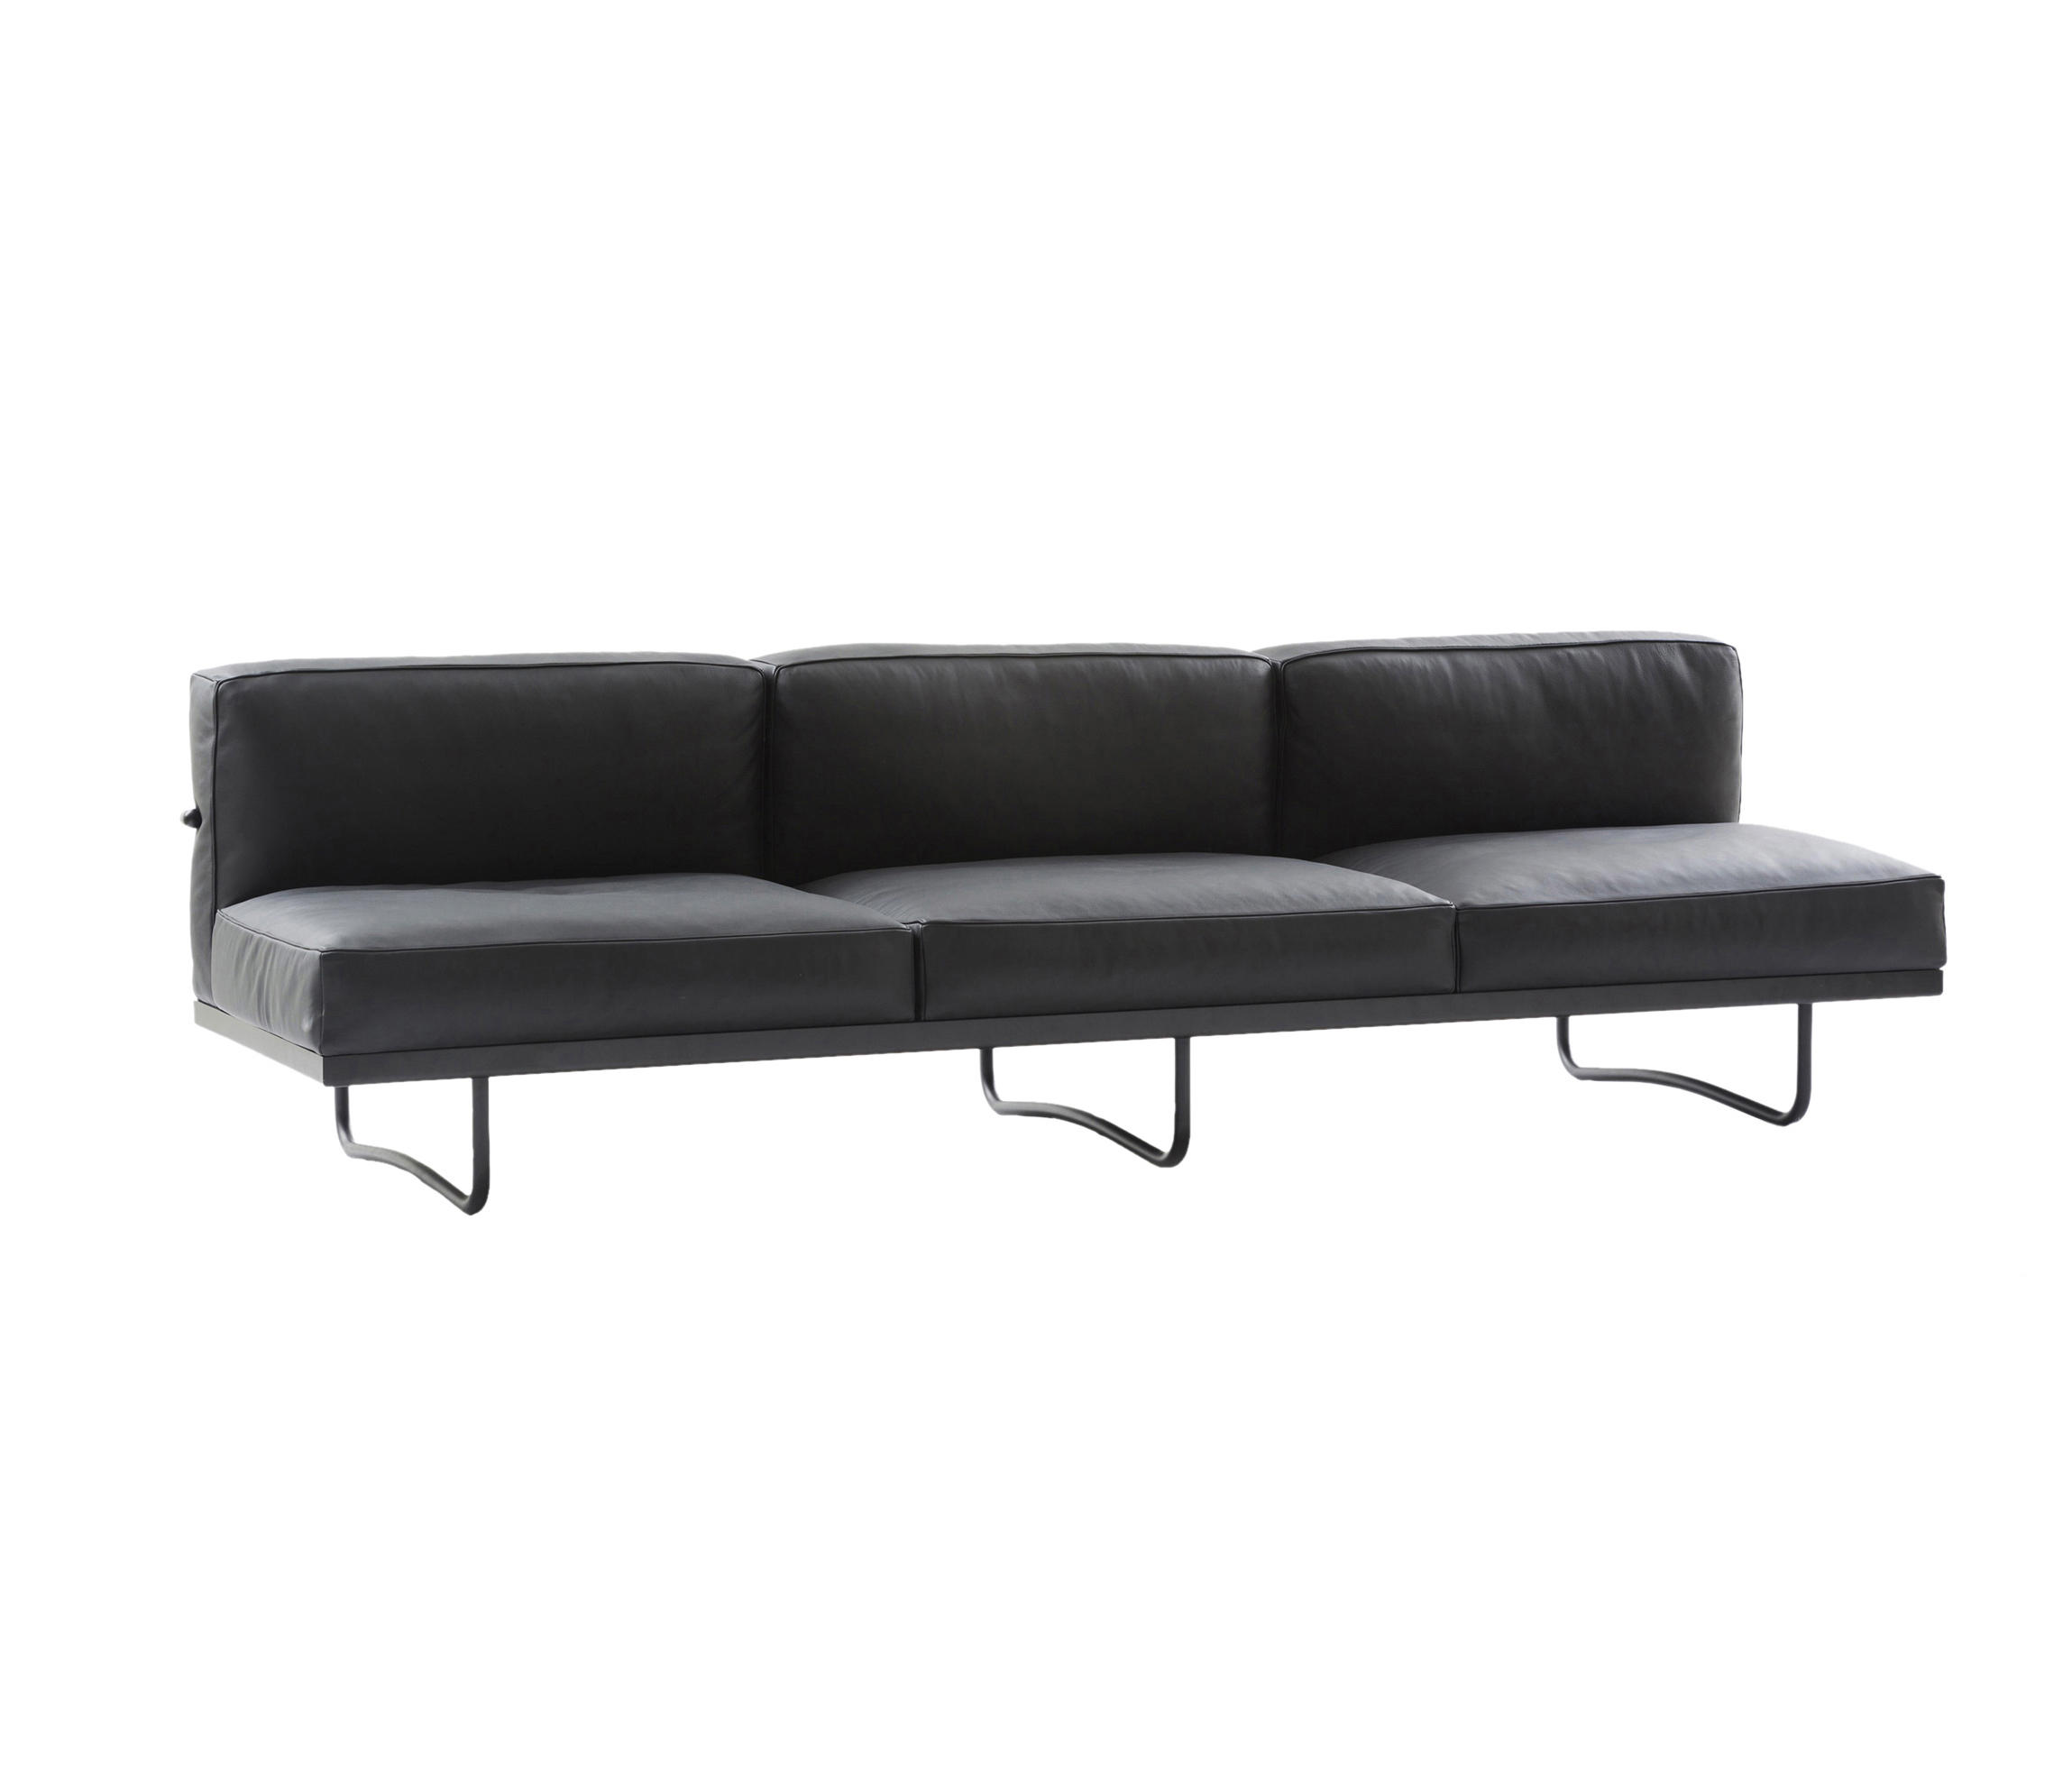 lc5 sofa price sleeper furniture set lounge sofas from cassina architonic